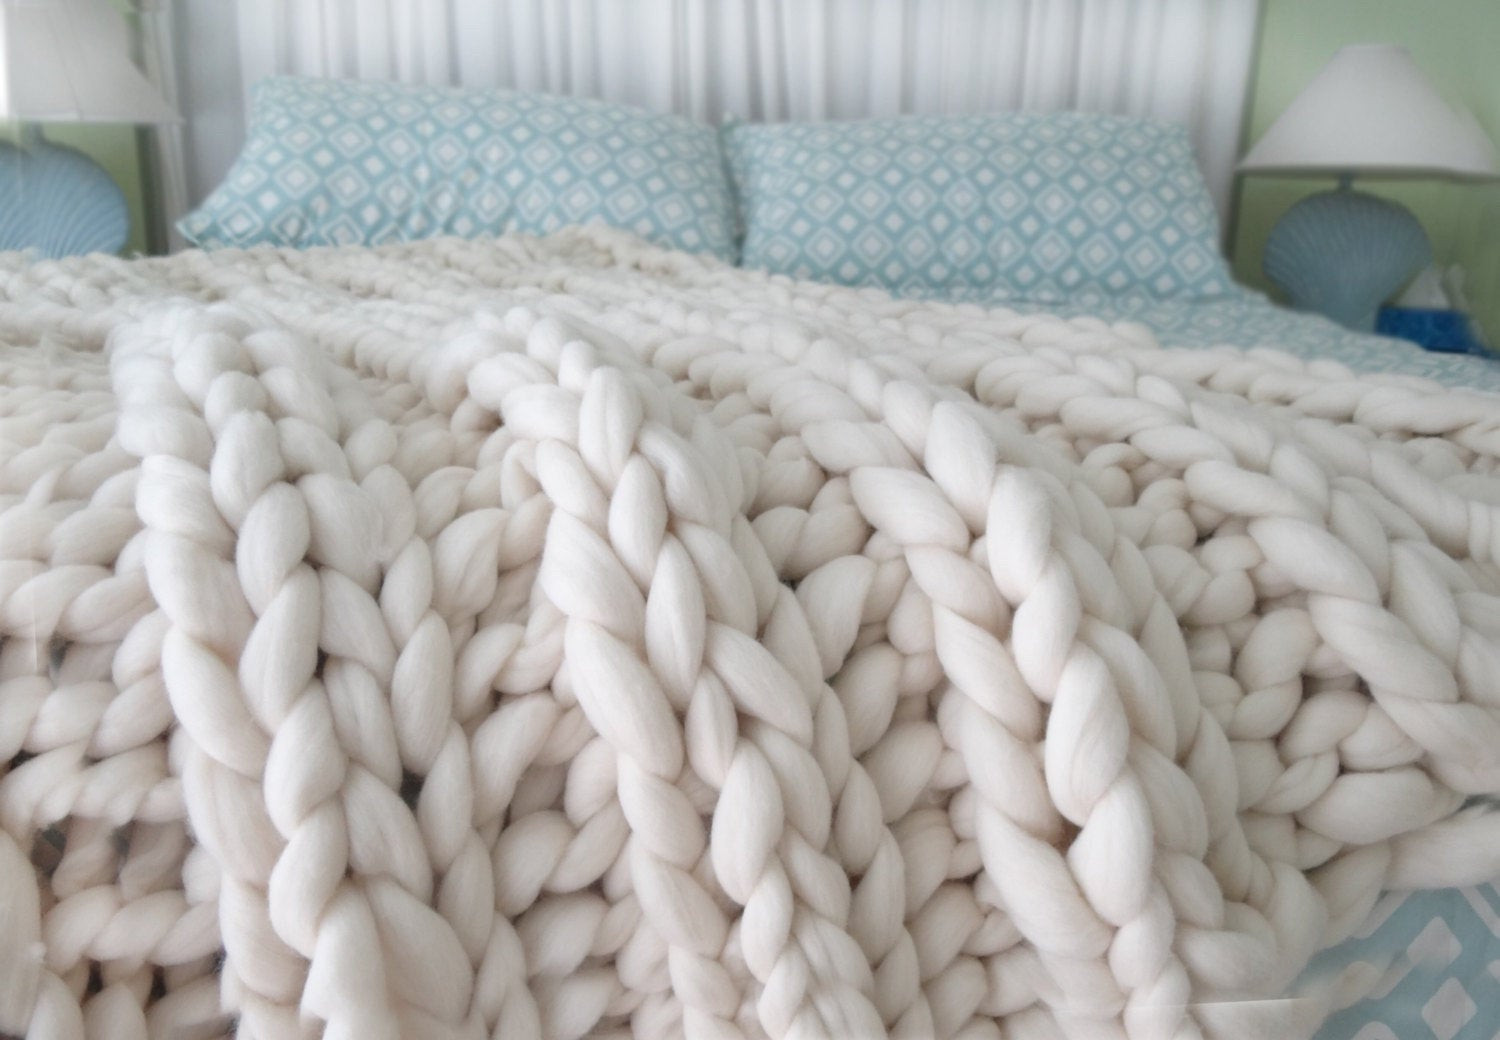 Chunky Wool Blanket Awesome Chunky Knit Blanket 32×48 Pure Merino Wool Knit Blanket Of Incredible 43 Pictures Chunky Wool Blanket